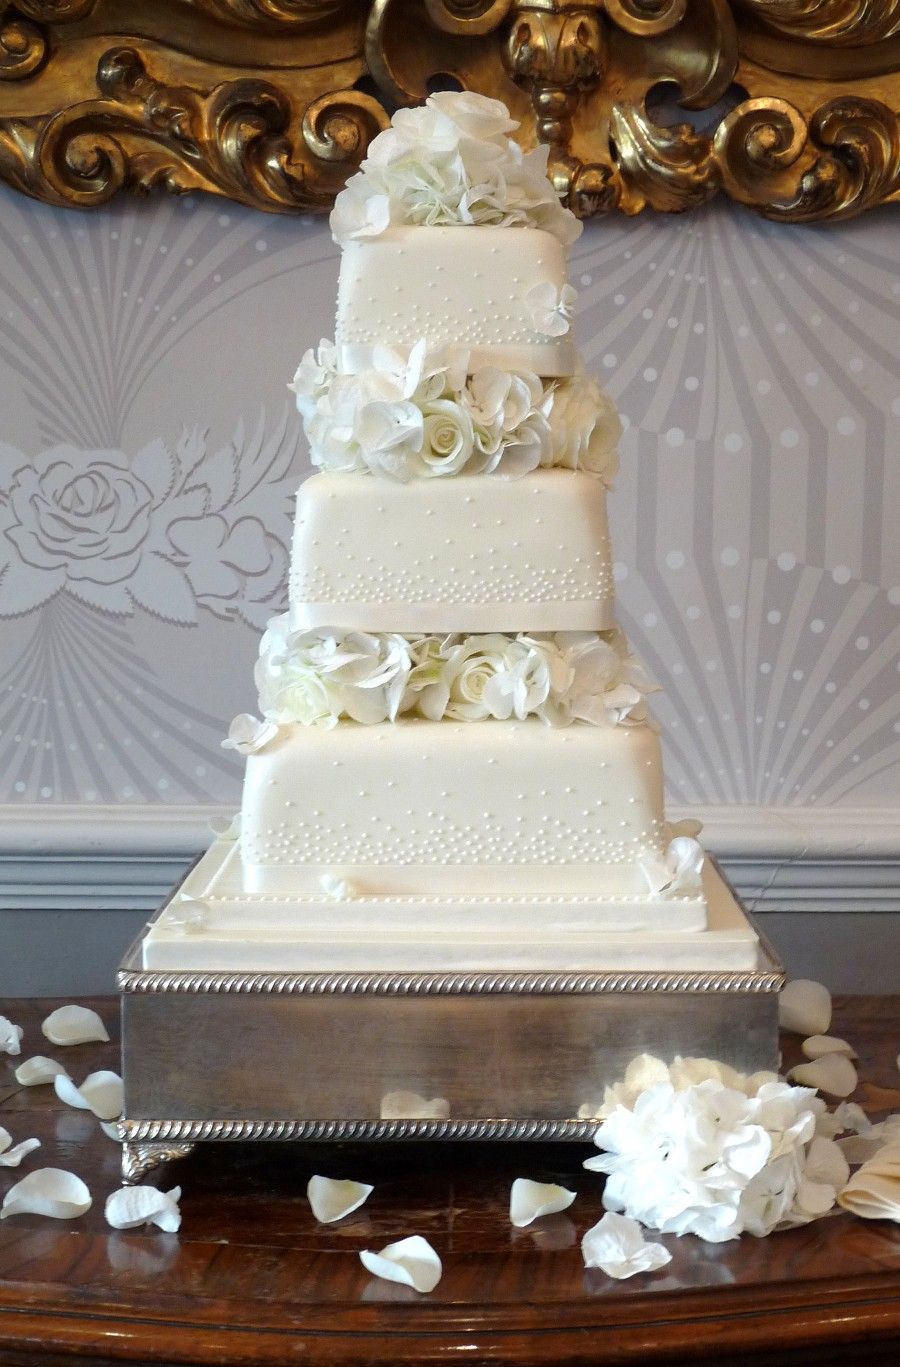 Wedding cake cakes pinterest for Wedding cake layer